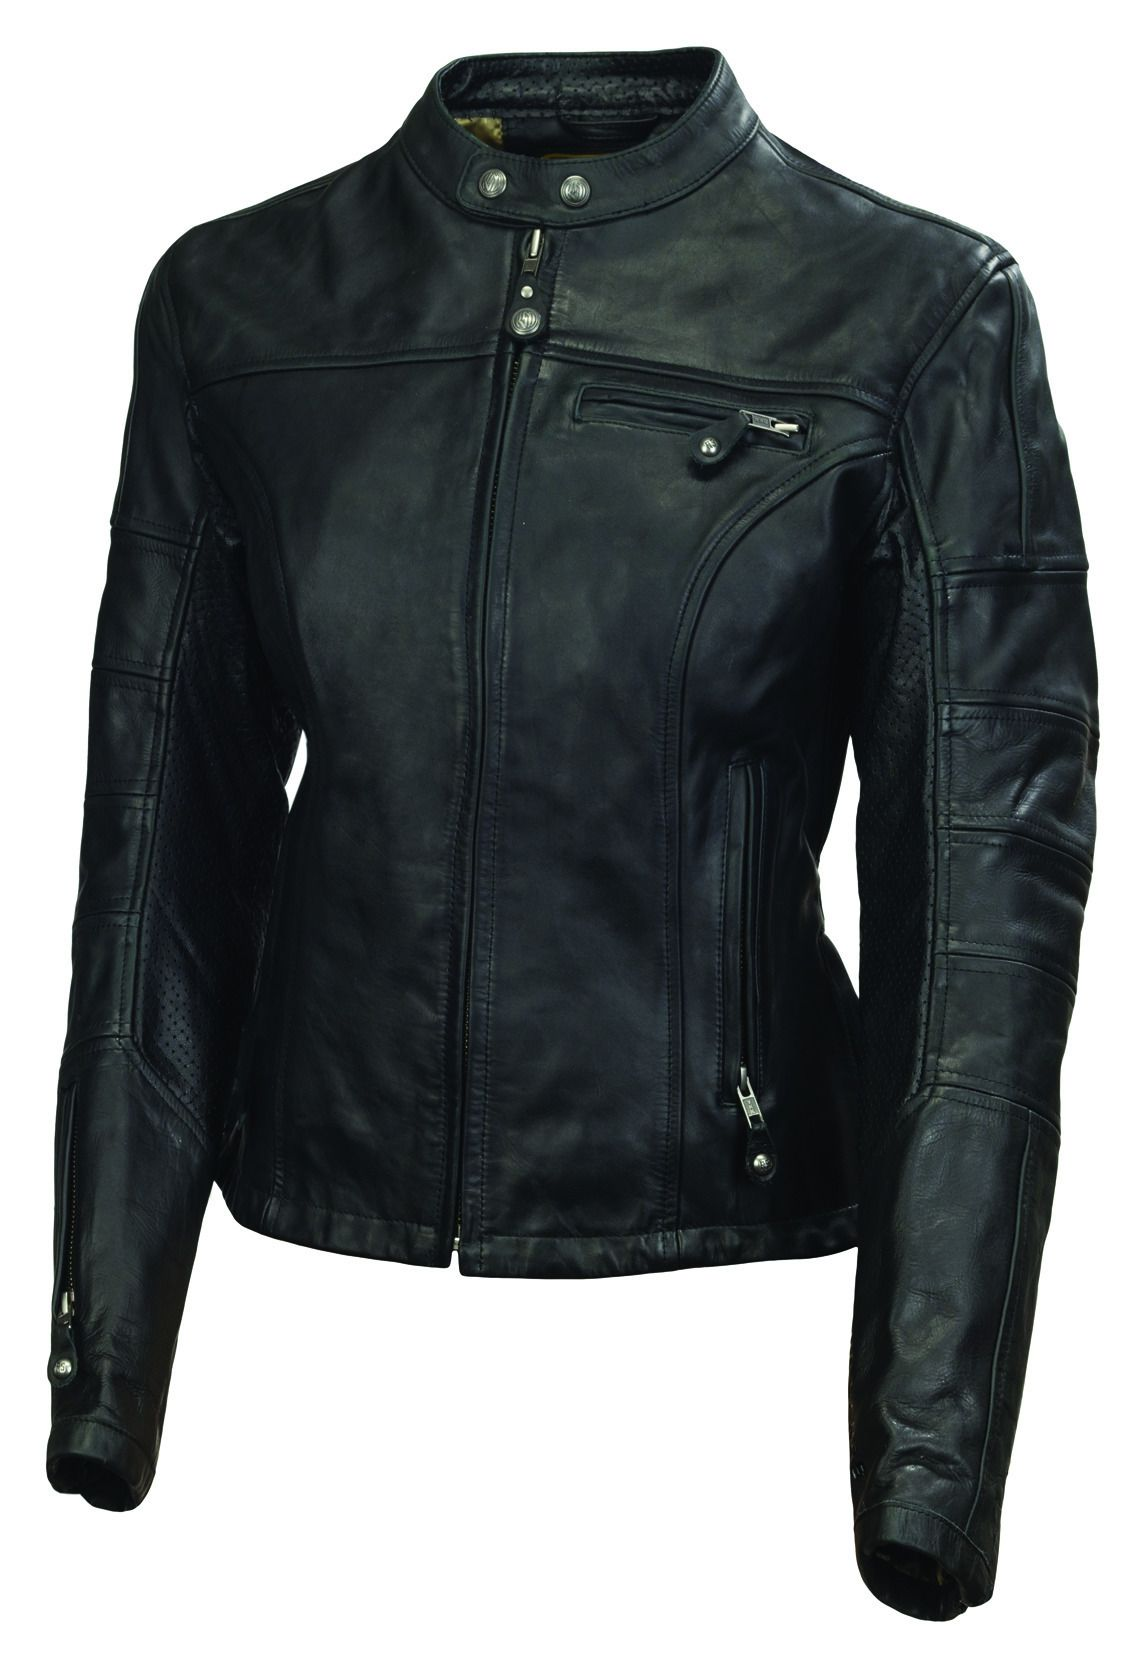 Home > Women > Leather Jackets - Women's > Motorcycle Jackets - Women's Premium collection of women's leather motorcycle jackets ideal for the biker that don't want just a look. Protection and style are also important.